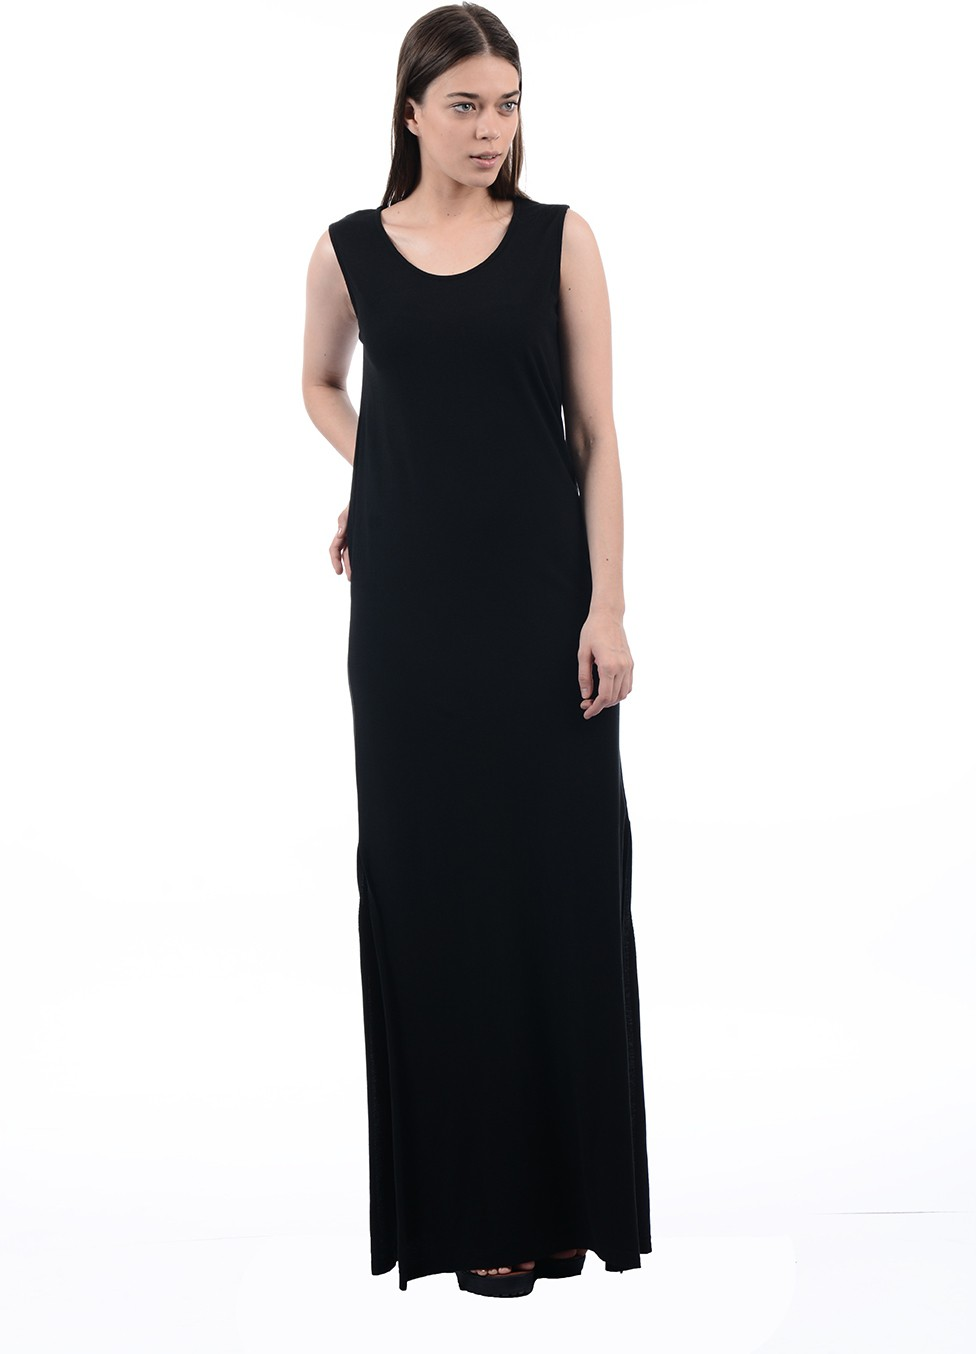 Pepe Jeans Womens Maxi Black Dress